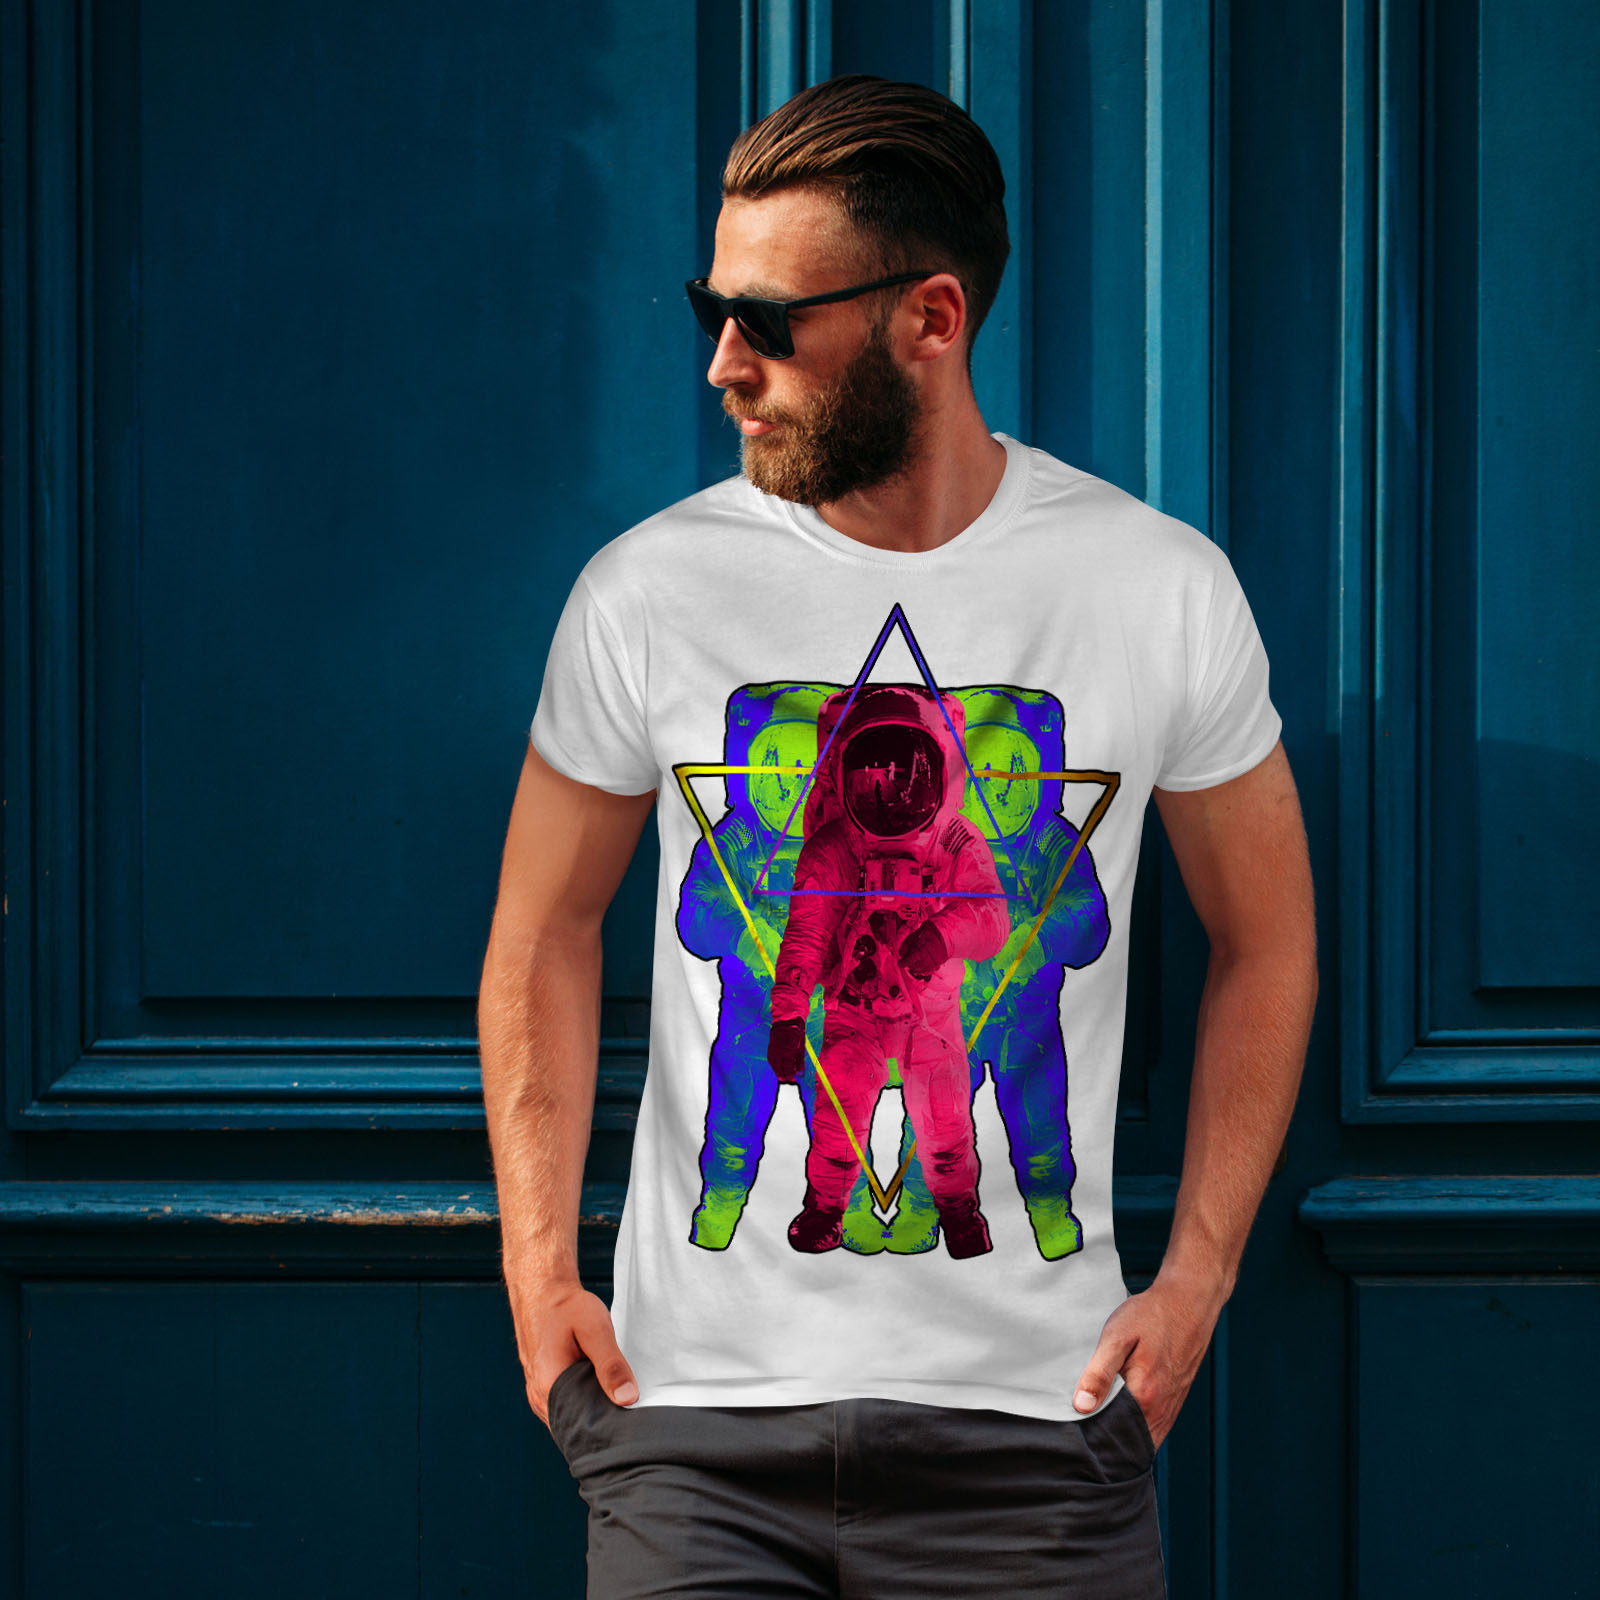 Wellcoda-Psychedelic-Astronaut-Mens-T-shirt-Star-Graphic-Design-Printed-Tee thumbnail 10